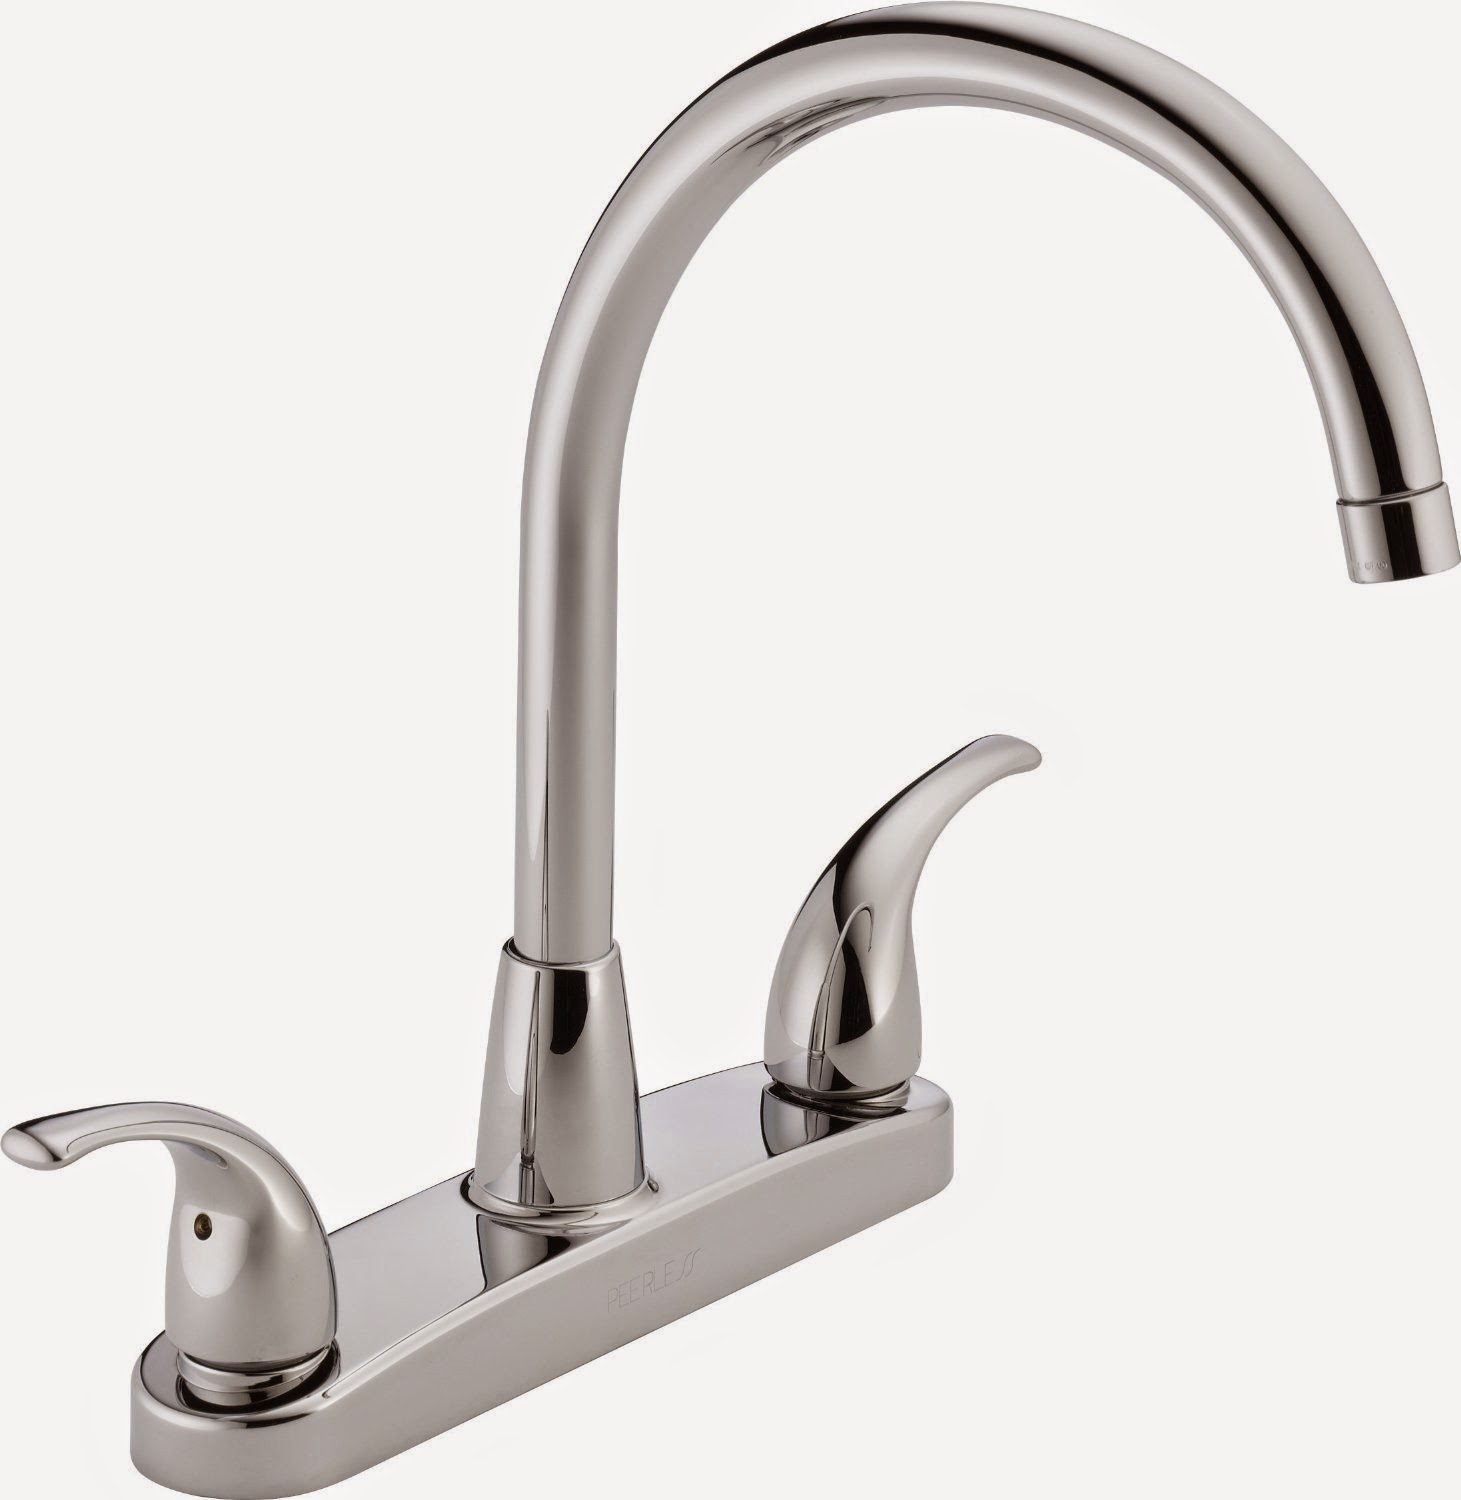 10 kitchen faucet installation cost Low Cost Kitchen Faucet